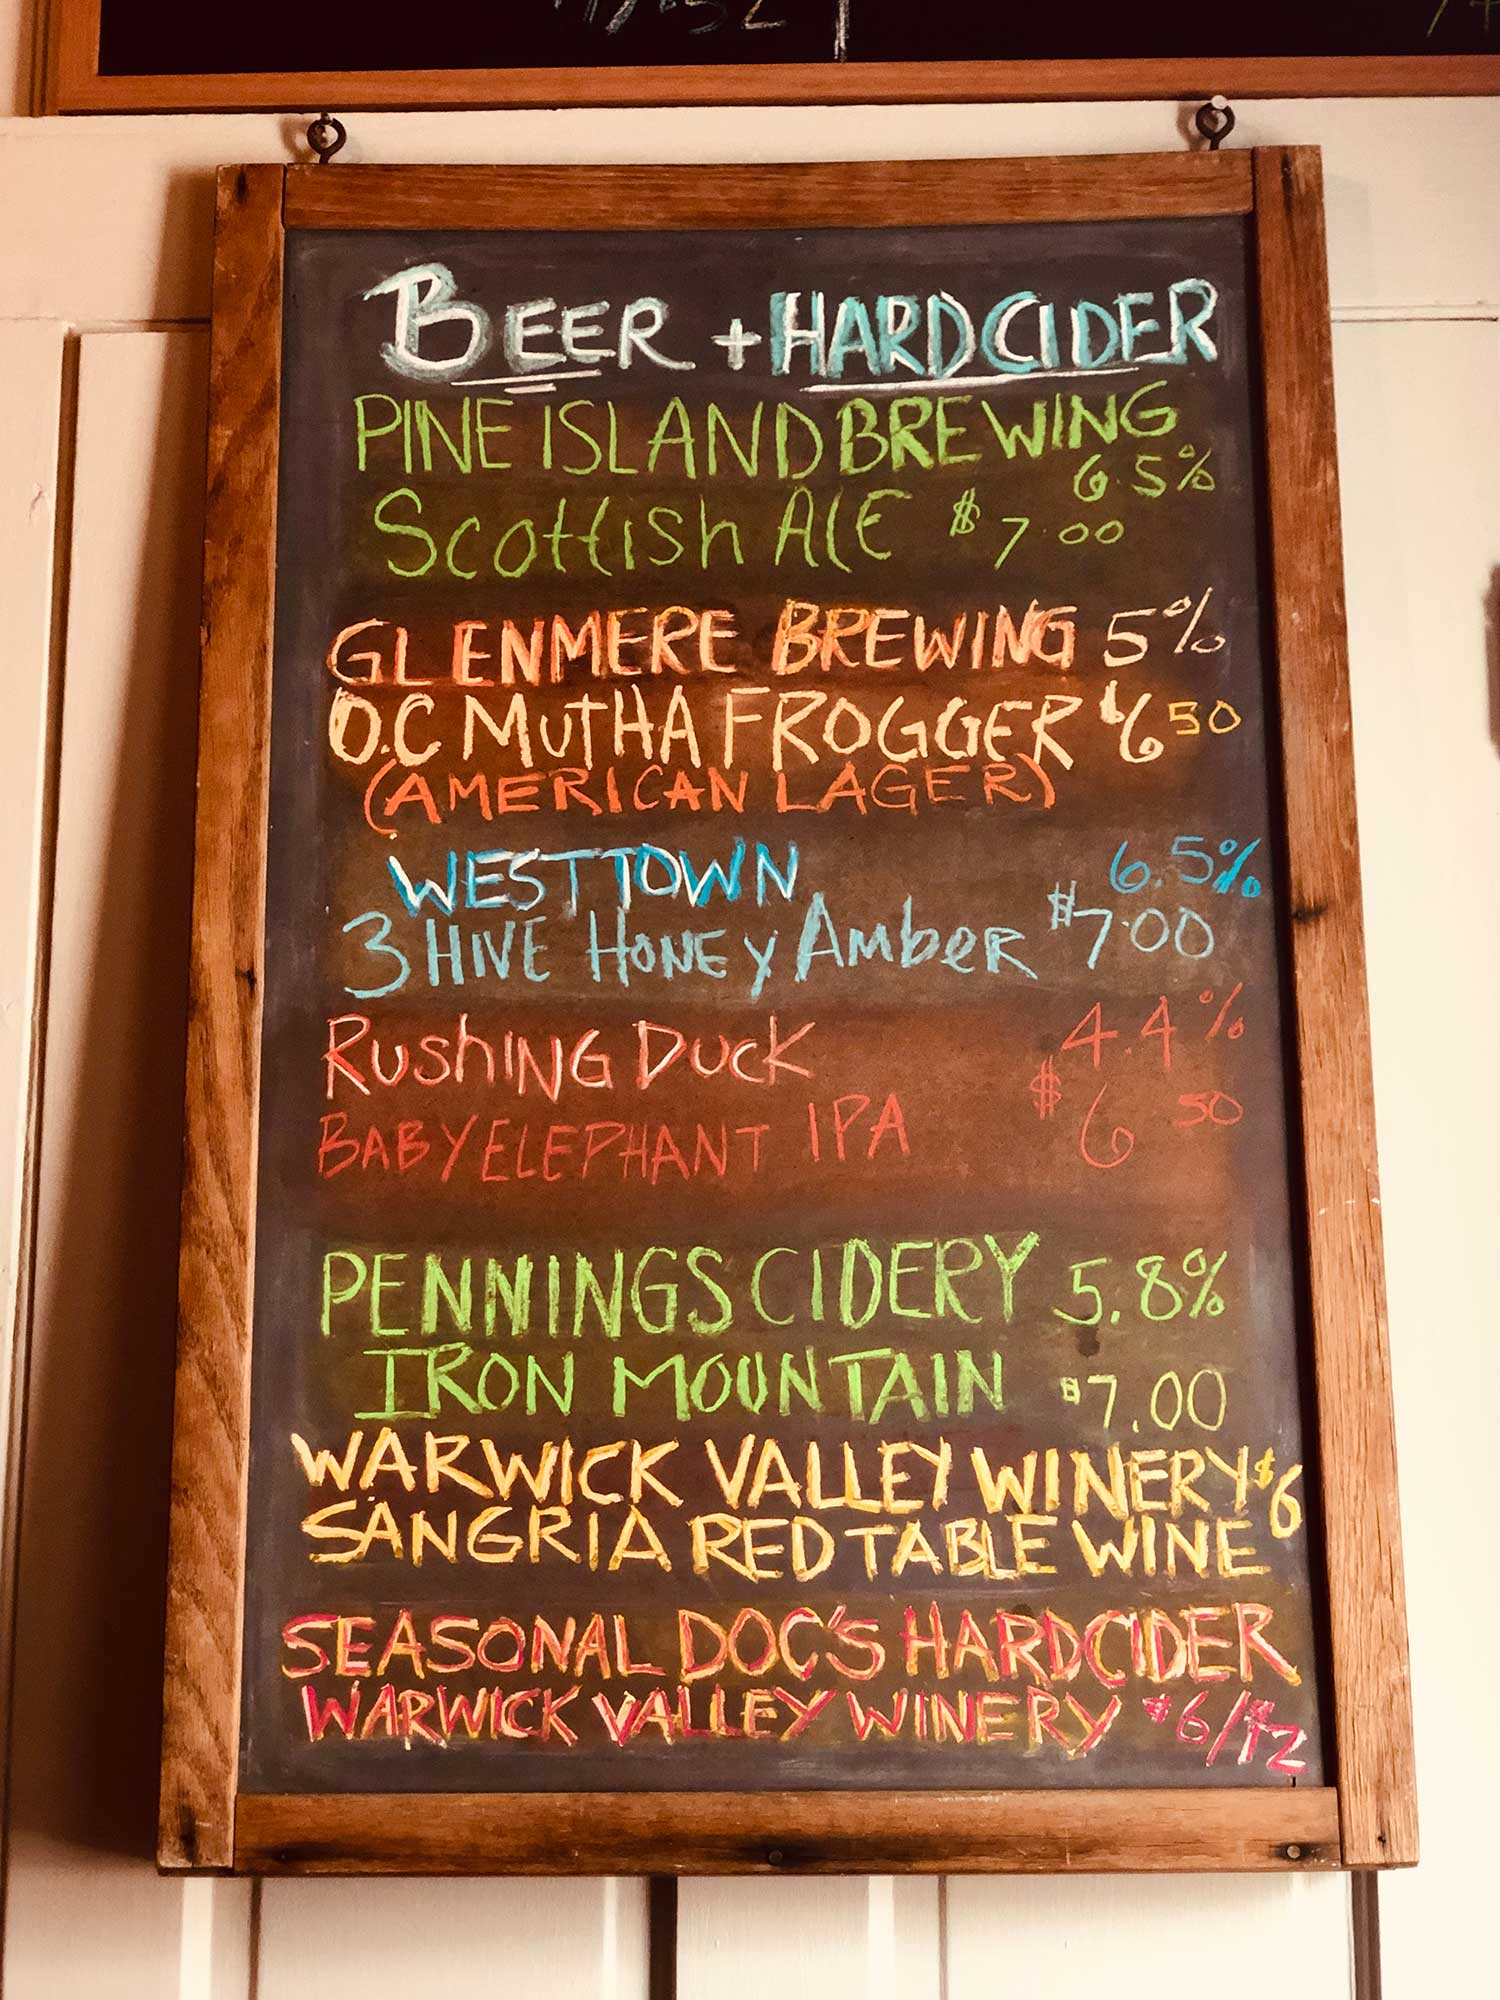 Local Brews   Beers and Hard Ciders from:  Pine Island Brewing ,  Glenmere Brewing Co. ,  Westtown Brew Works ,  Pennings Cidery  and  Warwick Valley Winery .